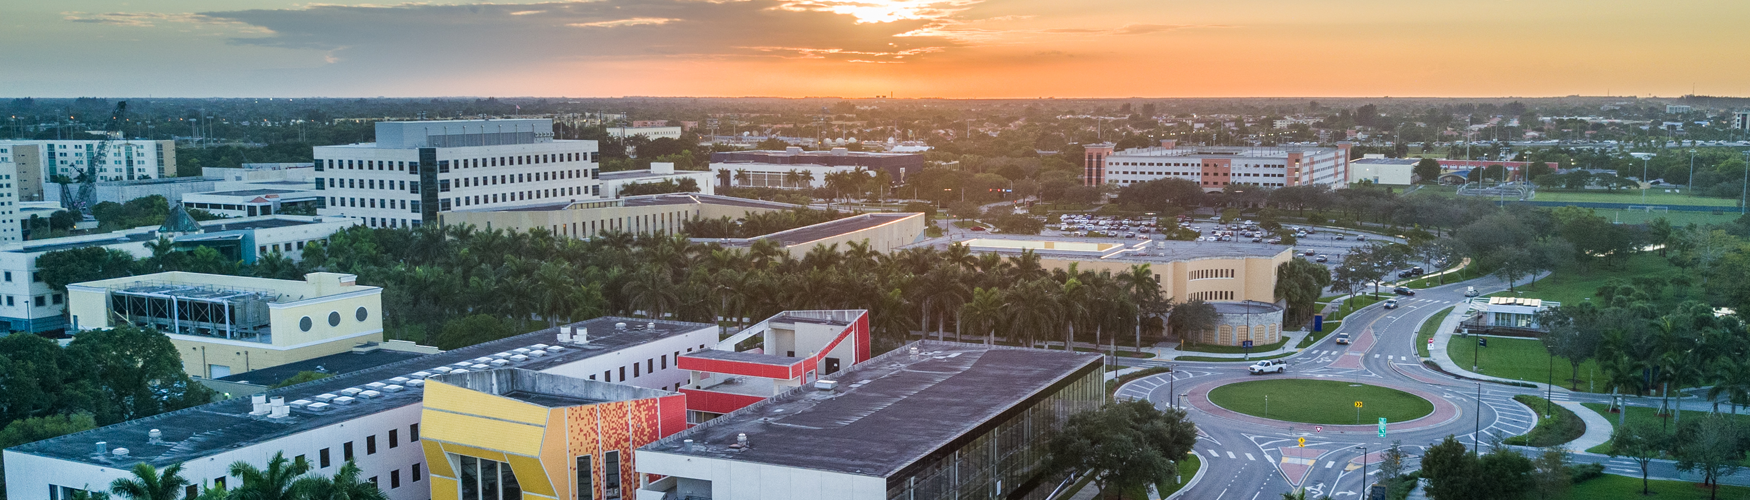 sunrise over FIU campus